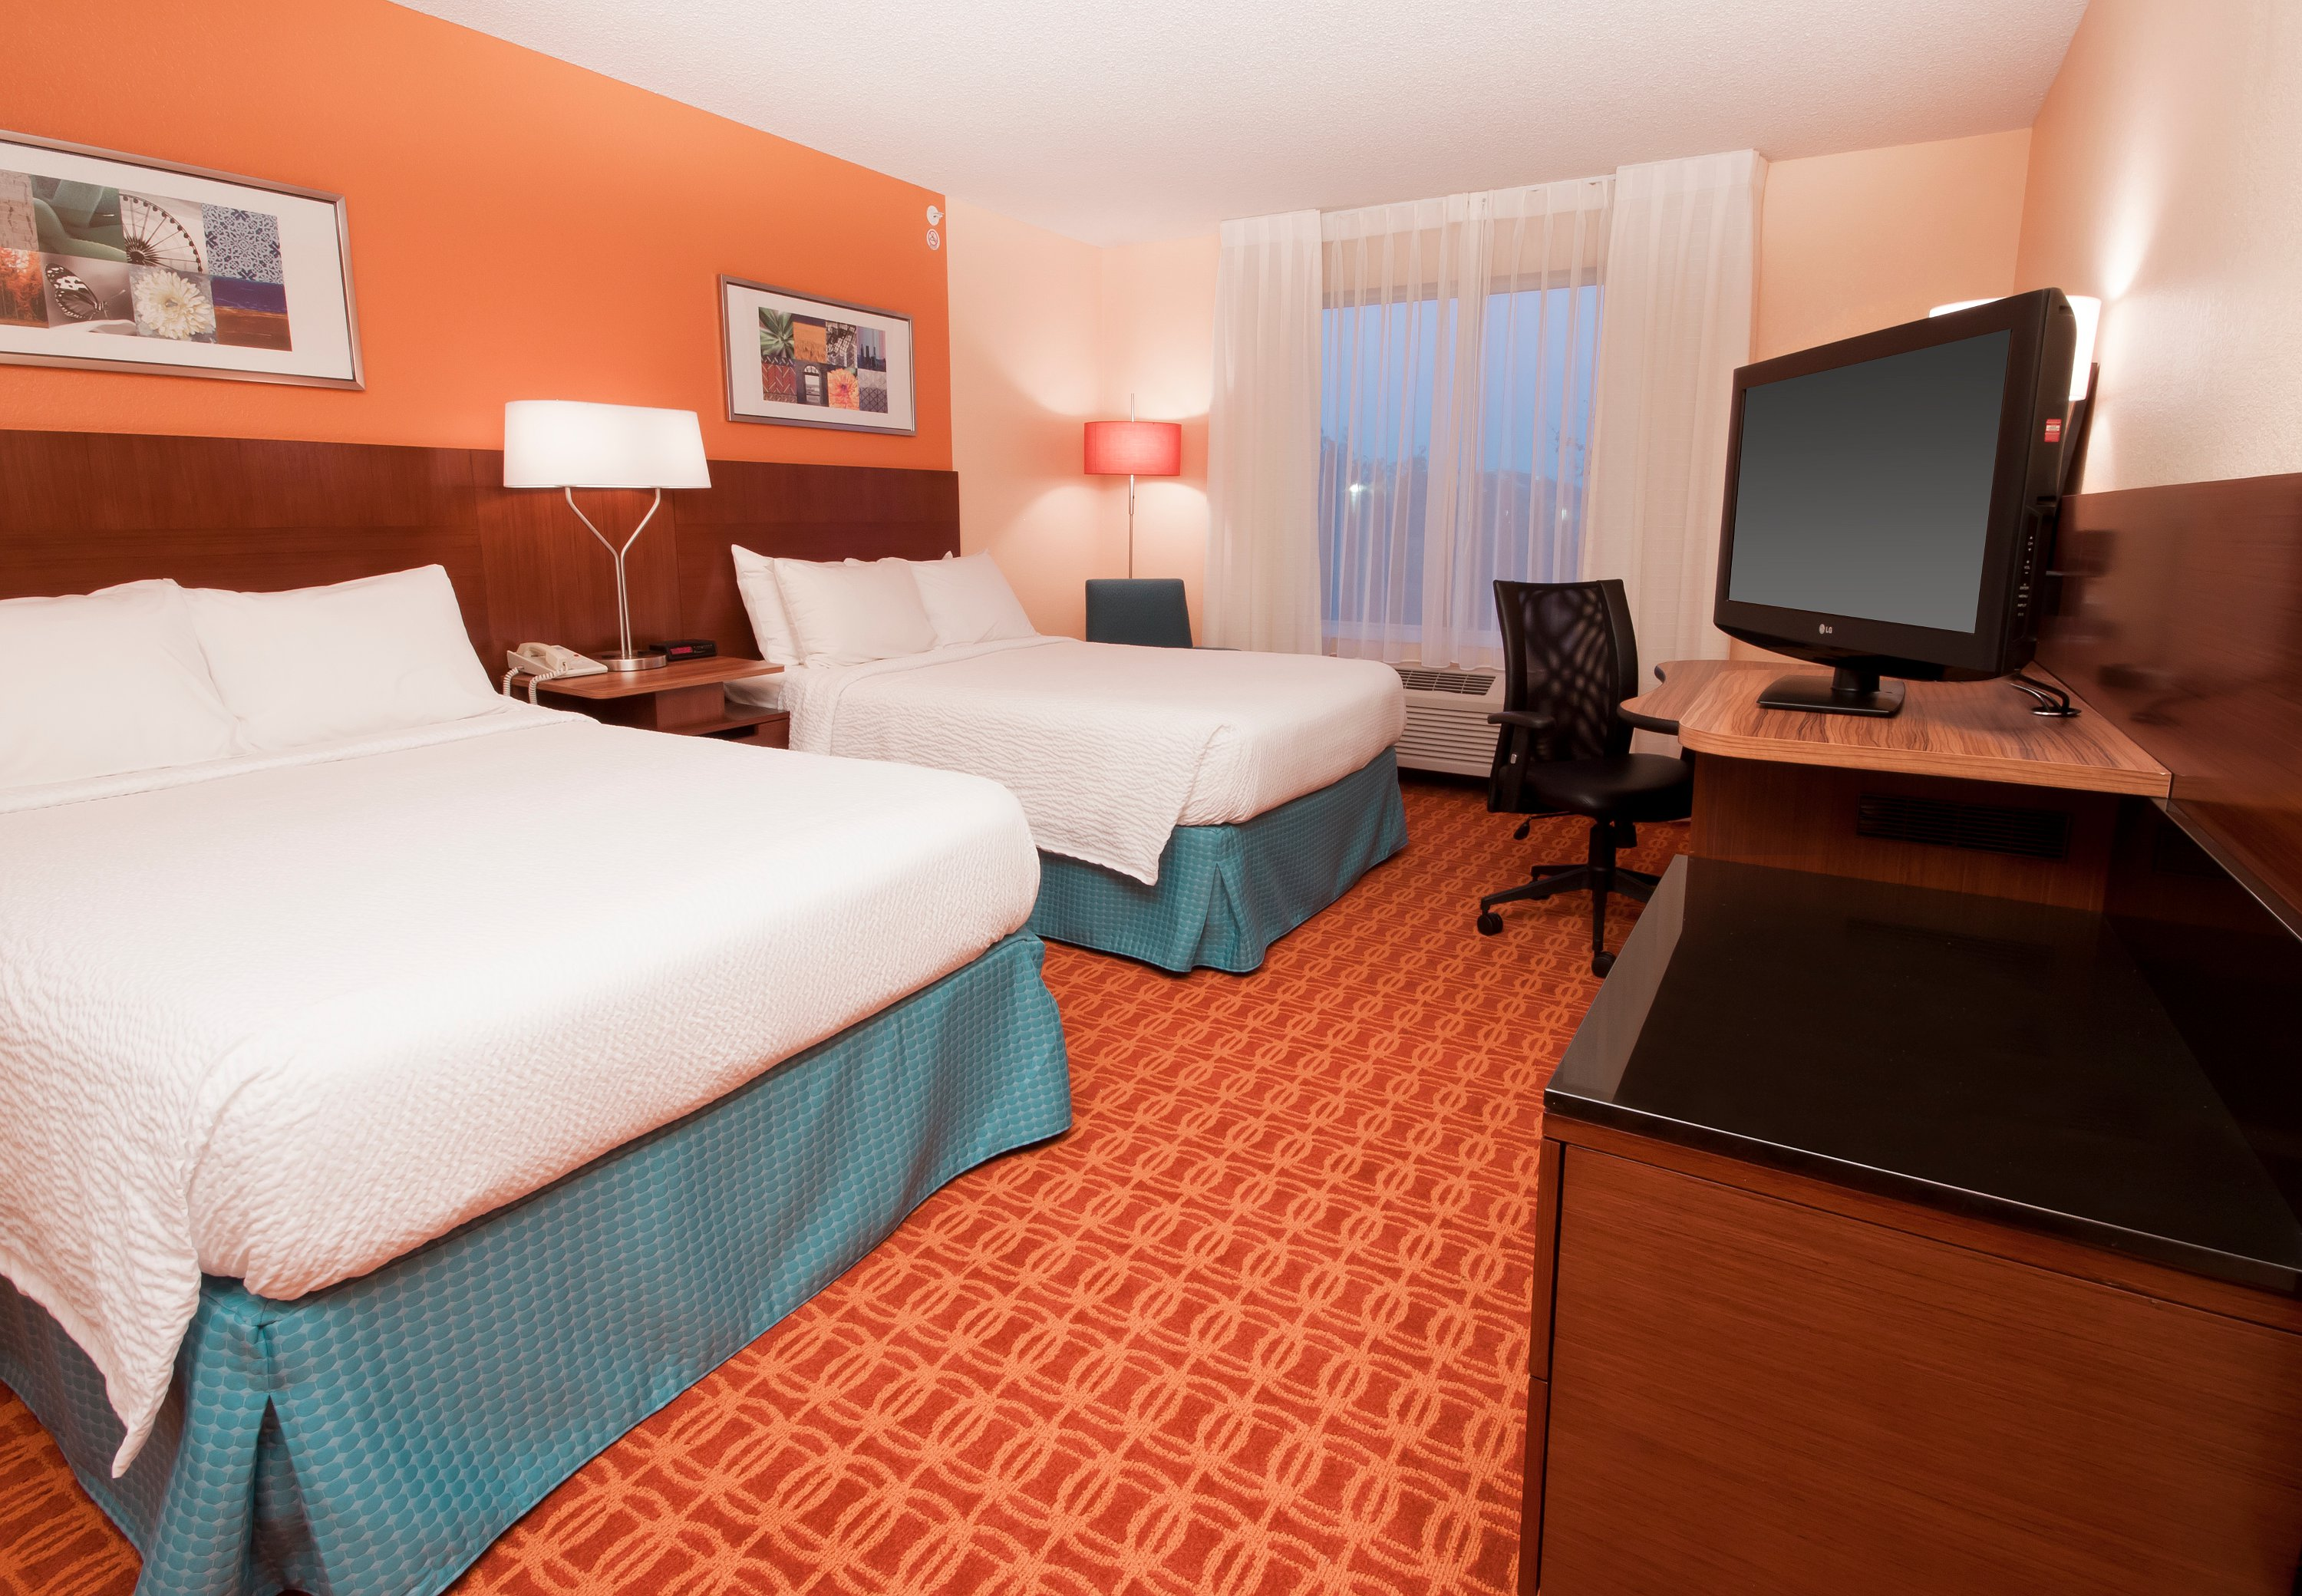 Fairfield Inn & Suites by Marriott Fort Worth/Fossil Creek image 4